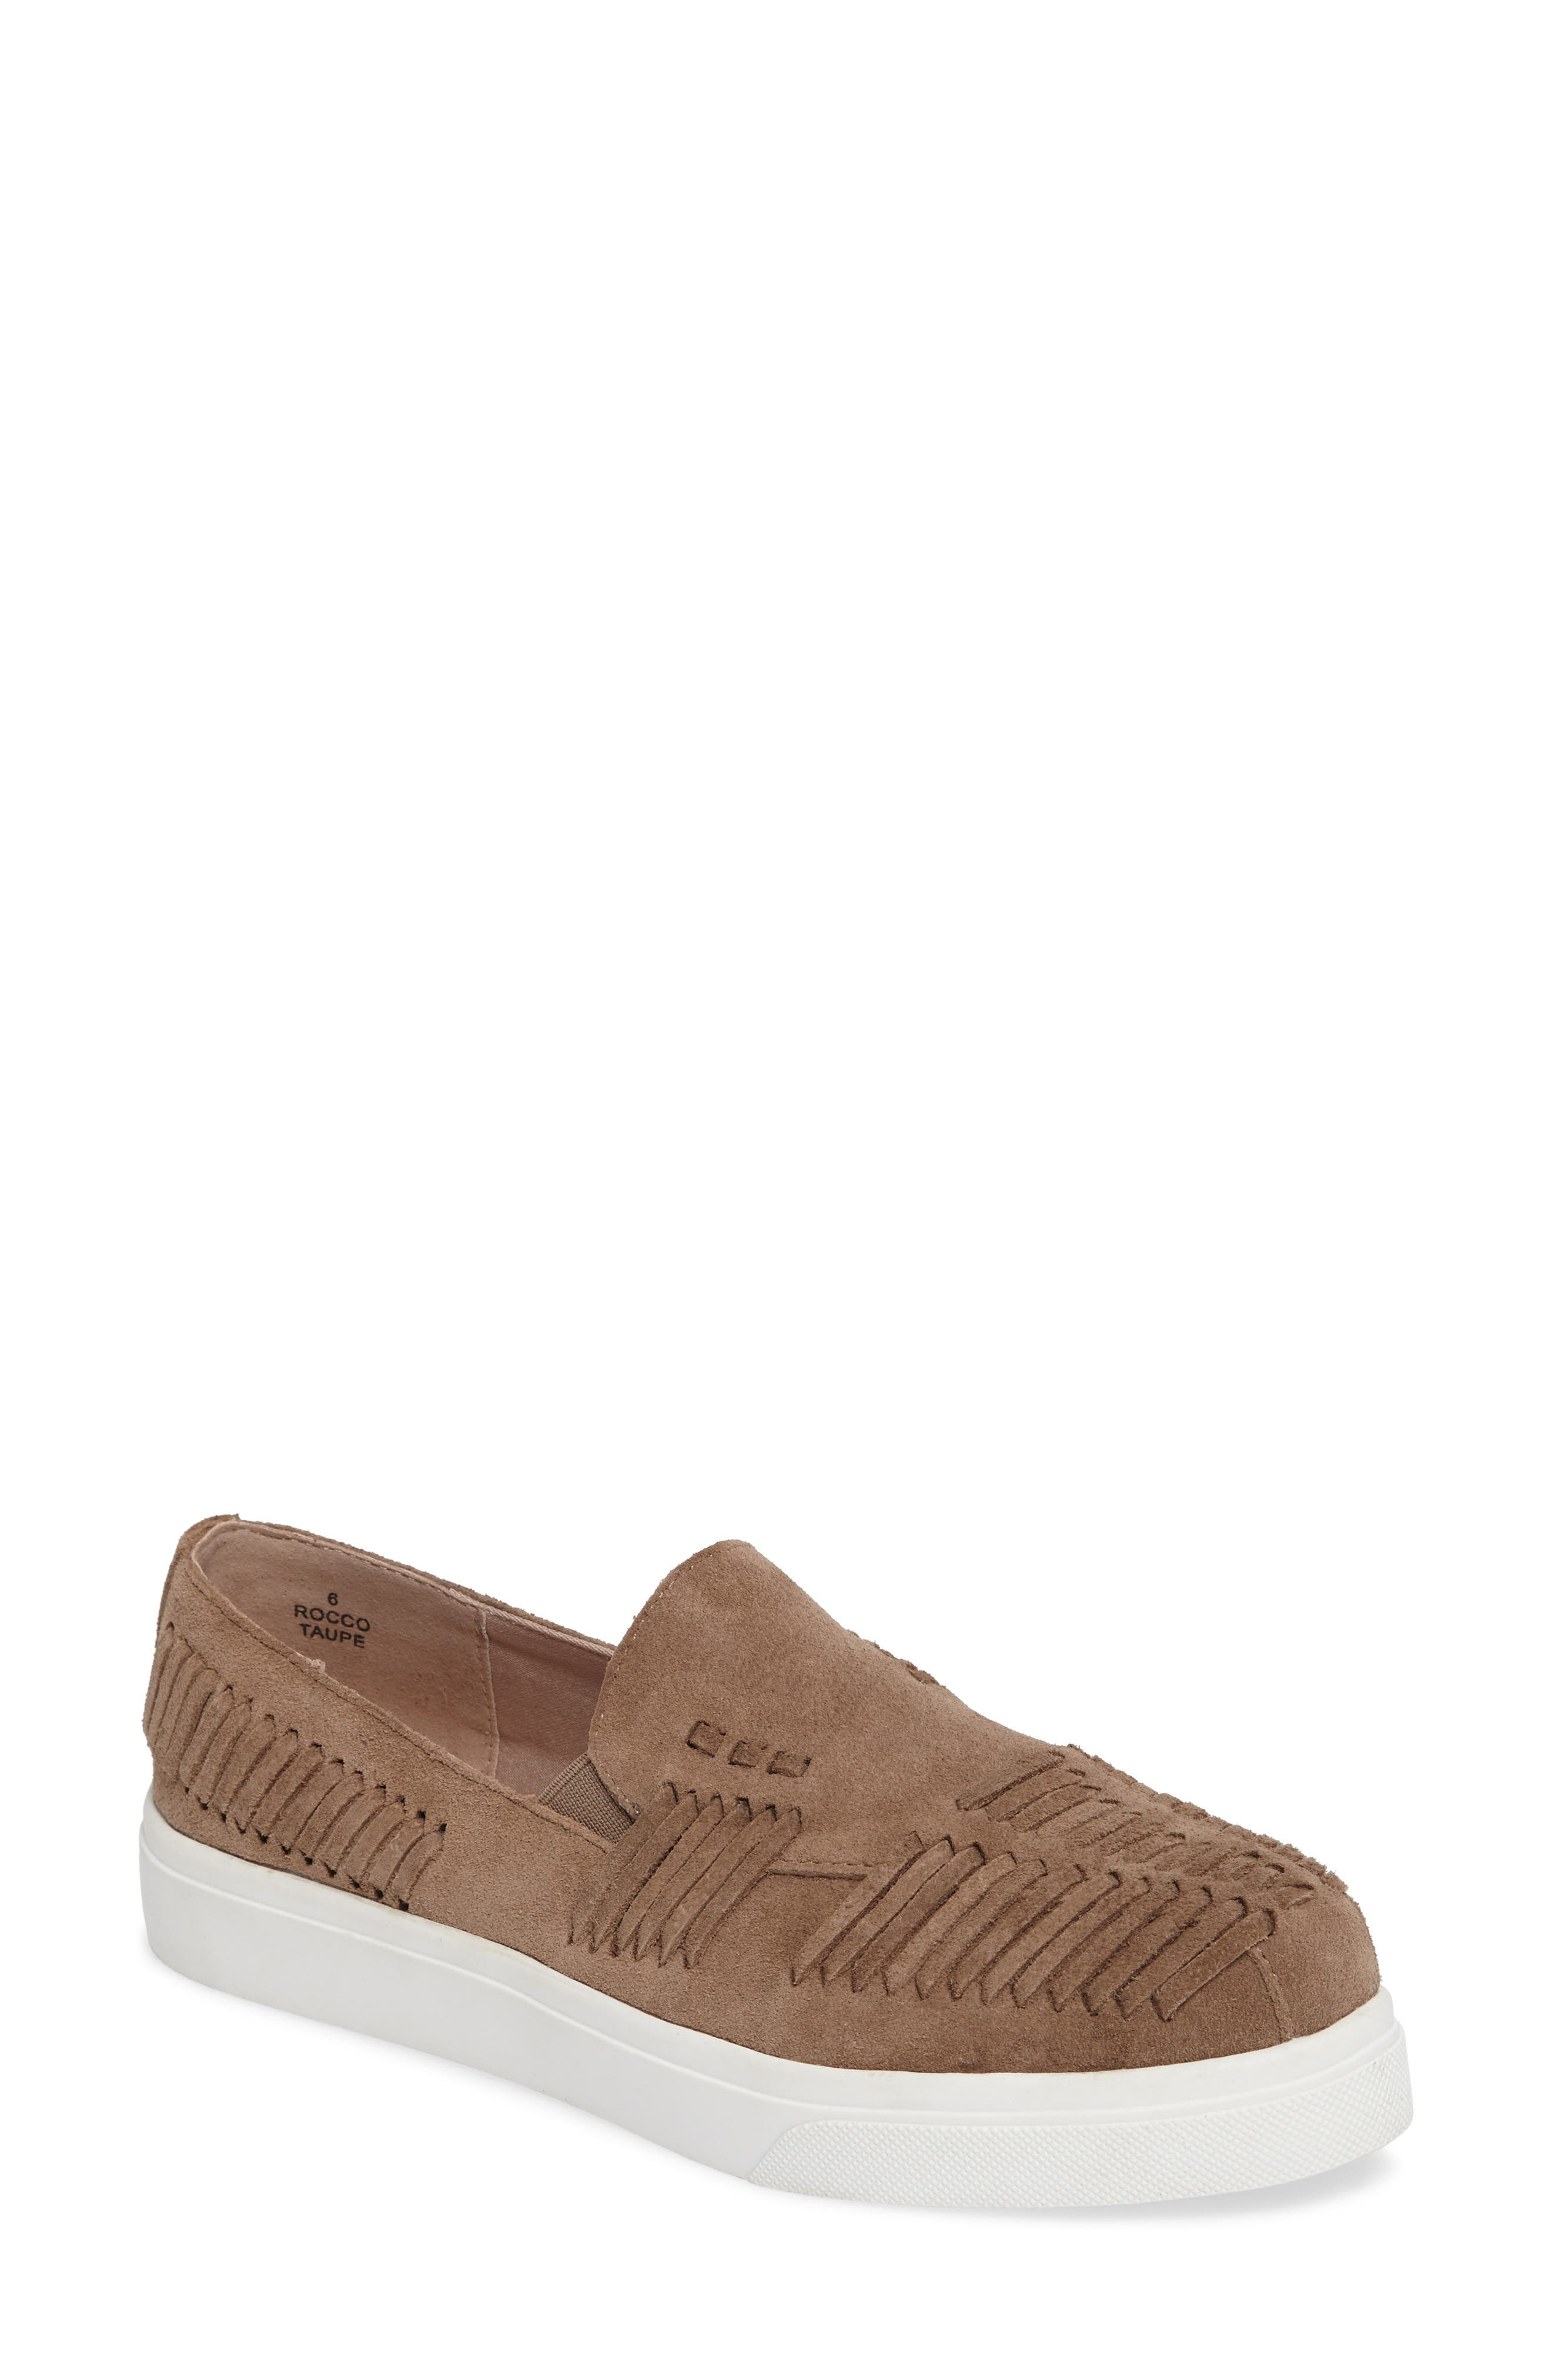 Rocco Woven Slip-On Sneaker,                         Main,                         color, Taupe Suede